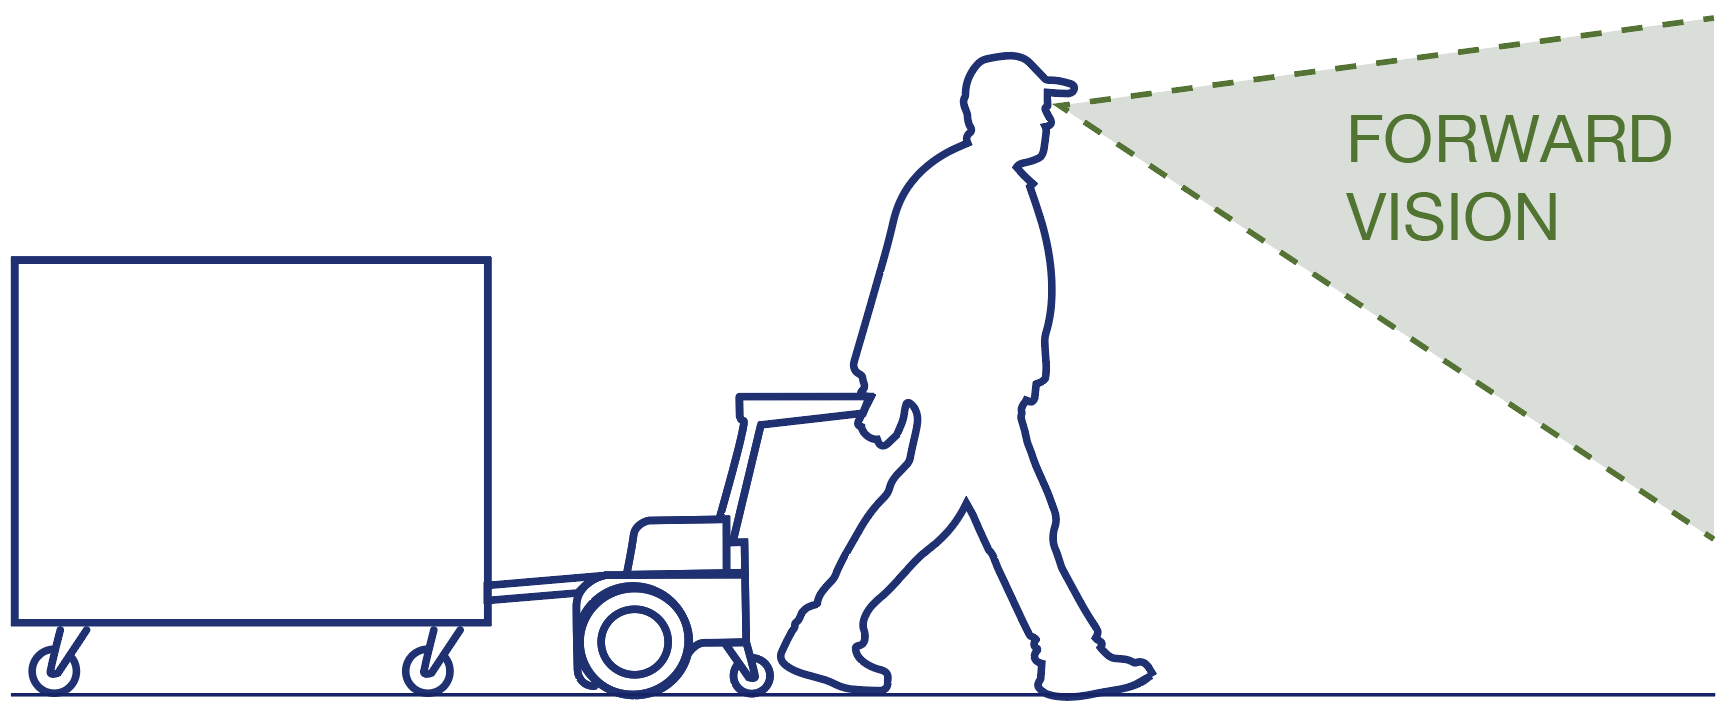 Maximise forward vision for safe towing